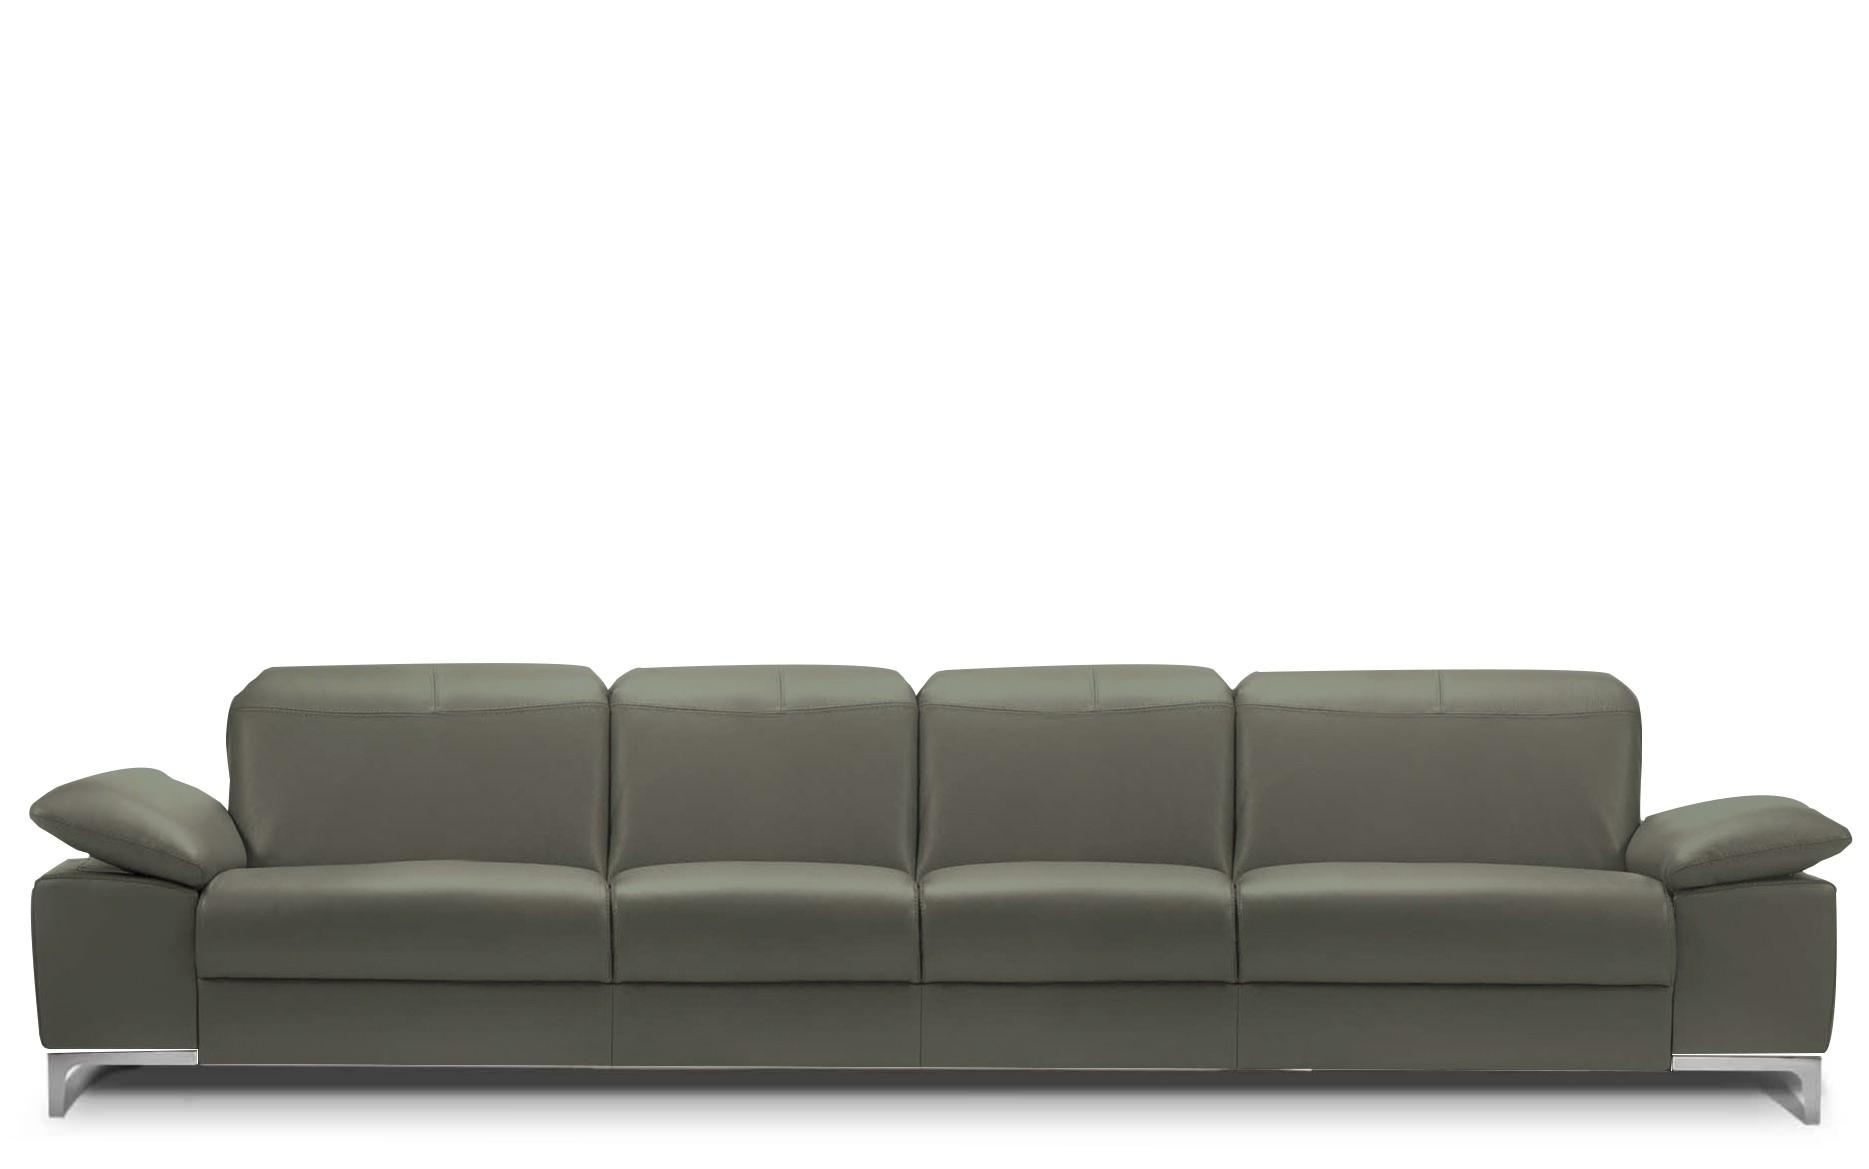 4 Seater Leather Sofas Uk – Sofas Furniture Inside 4 Seater Sofas (Image 1 of 20)